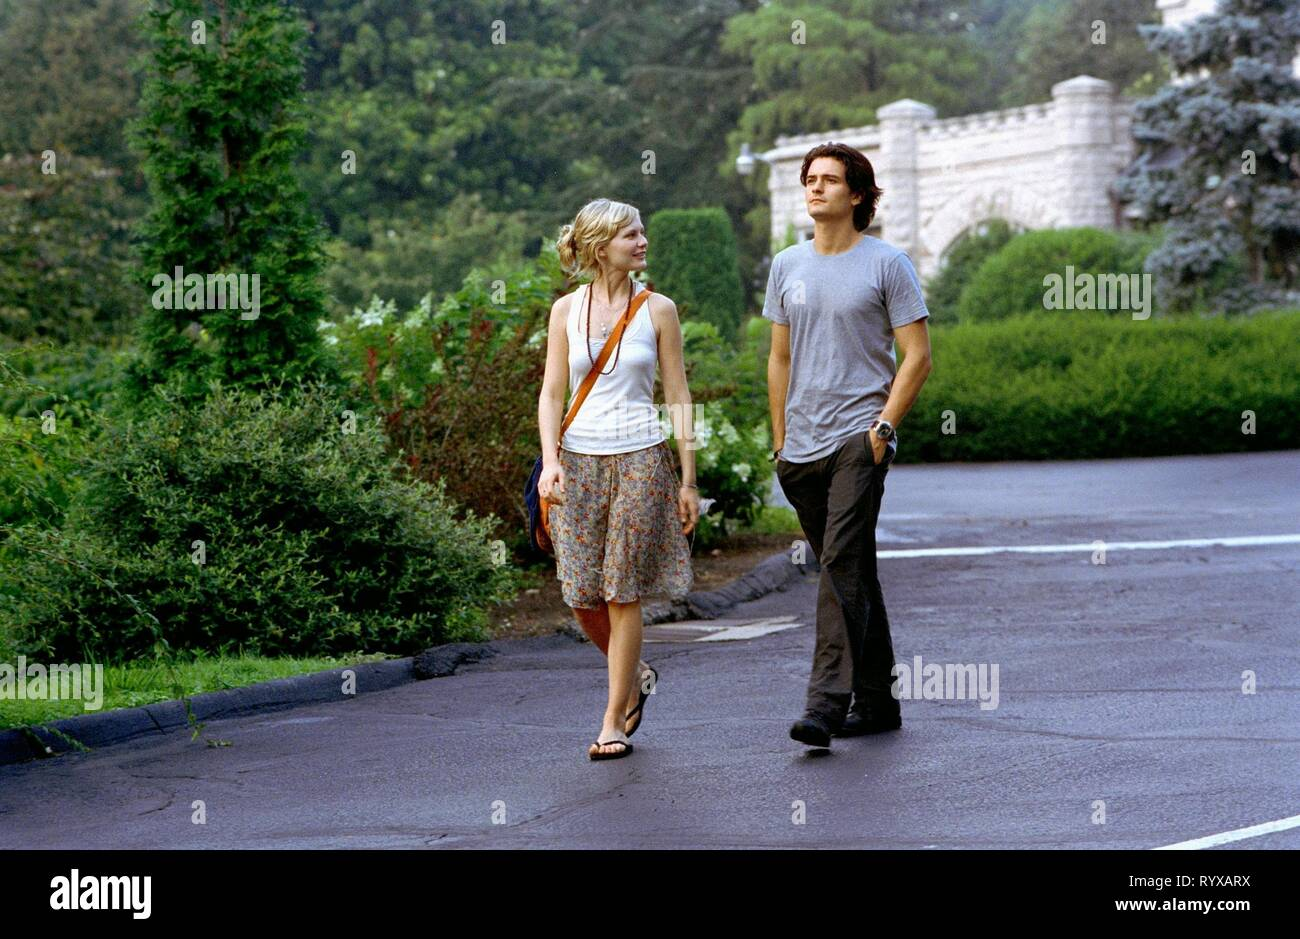 Kirsten Dunst Full Length High Resolution Stock Photography And Images Alamy